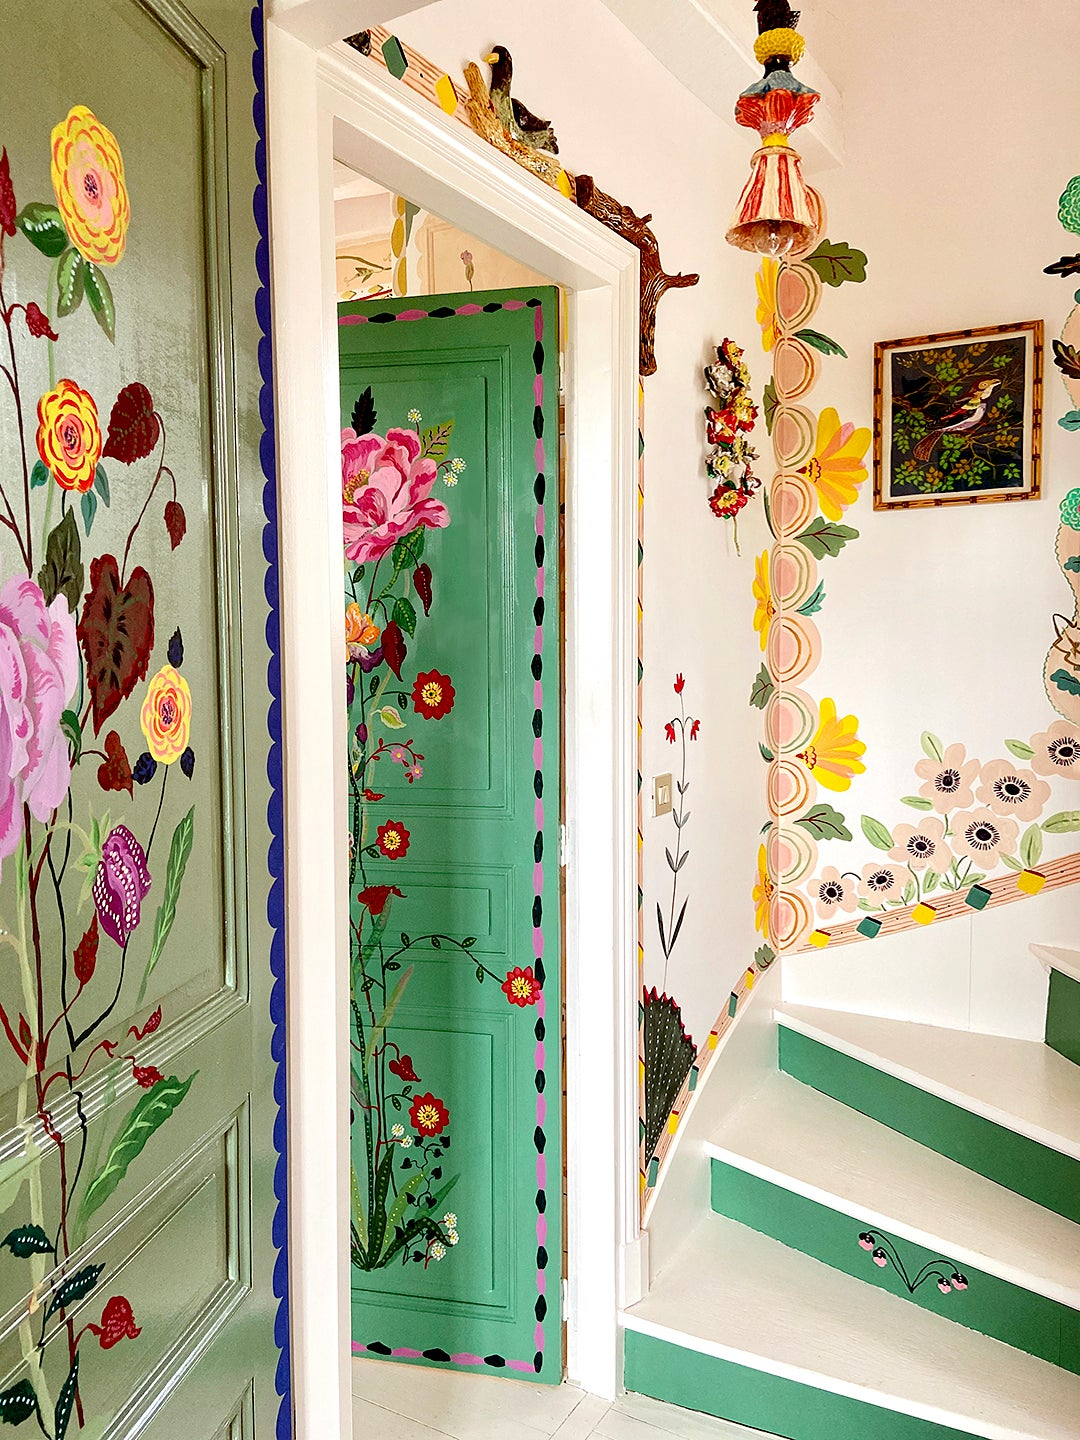 This French Artist Is Painting Her Home Full of Flowers to Pass the Time